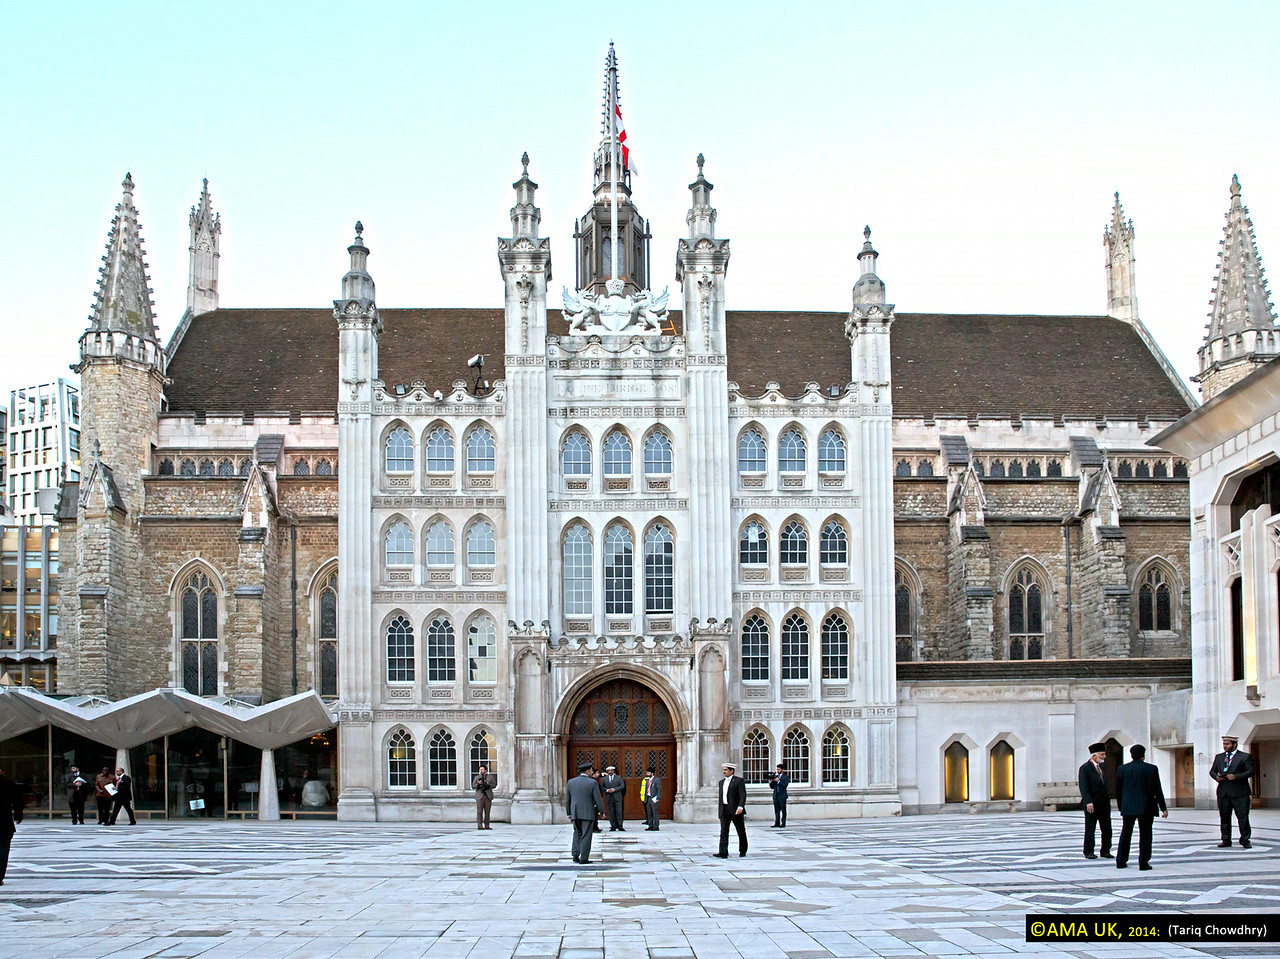 Guildhall - In London. Guildhall hosts many events throughout the year, the most notable one being the Lord Mayor's Banquet, which is held in honour of the immediate-past Lord Mayor and is the first to be hosted by the new Lord Mayor of the City of London. In keeping with tradition, it is at this Banquet that the Prime Minister makes a major World Affairs speech.<br /> <br /> Together with its of history and tradition with the very latest state-of-the-art built-in communication technology made it an ideal location for the Ahamdiyya Muslim Community to choose this as the setting for this historic event.<br /> <br /> The Great Hall where the main conference was held can accomodate up to 900 people in an environment of a high-arched ceiling, Gothic stained glass windows and monuments to national heroes.